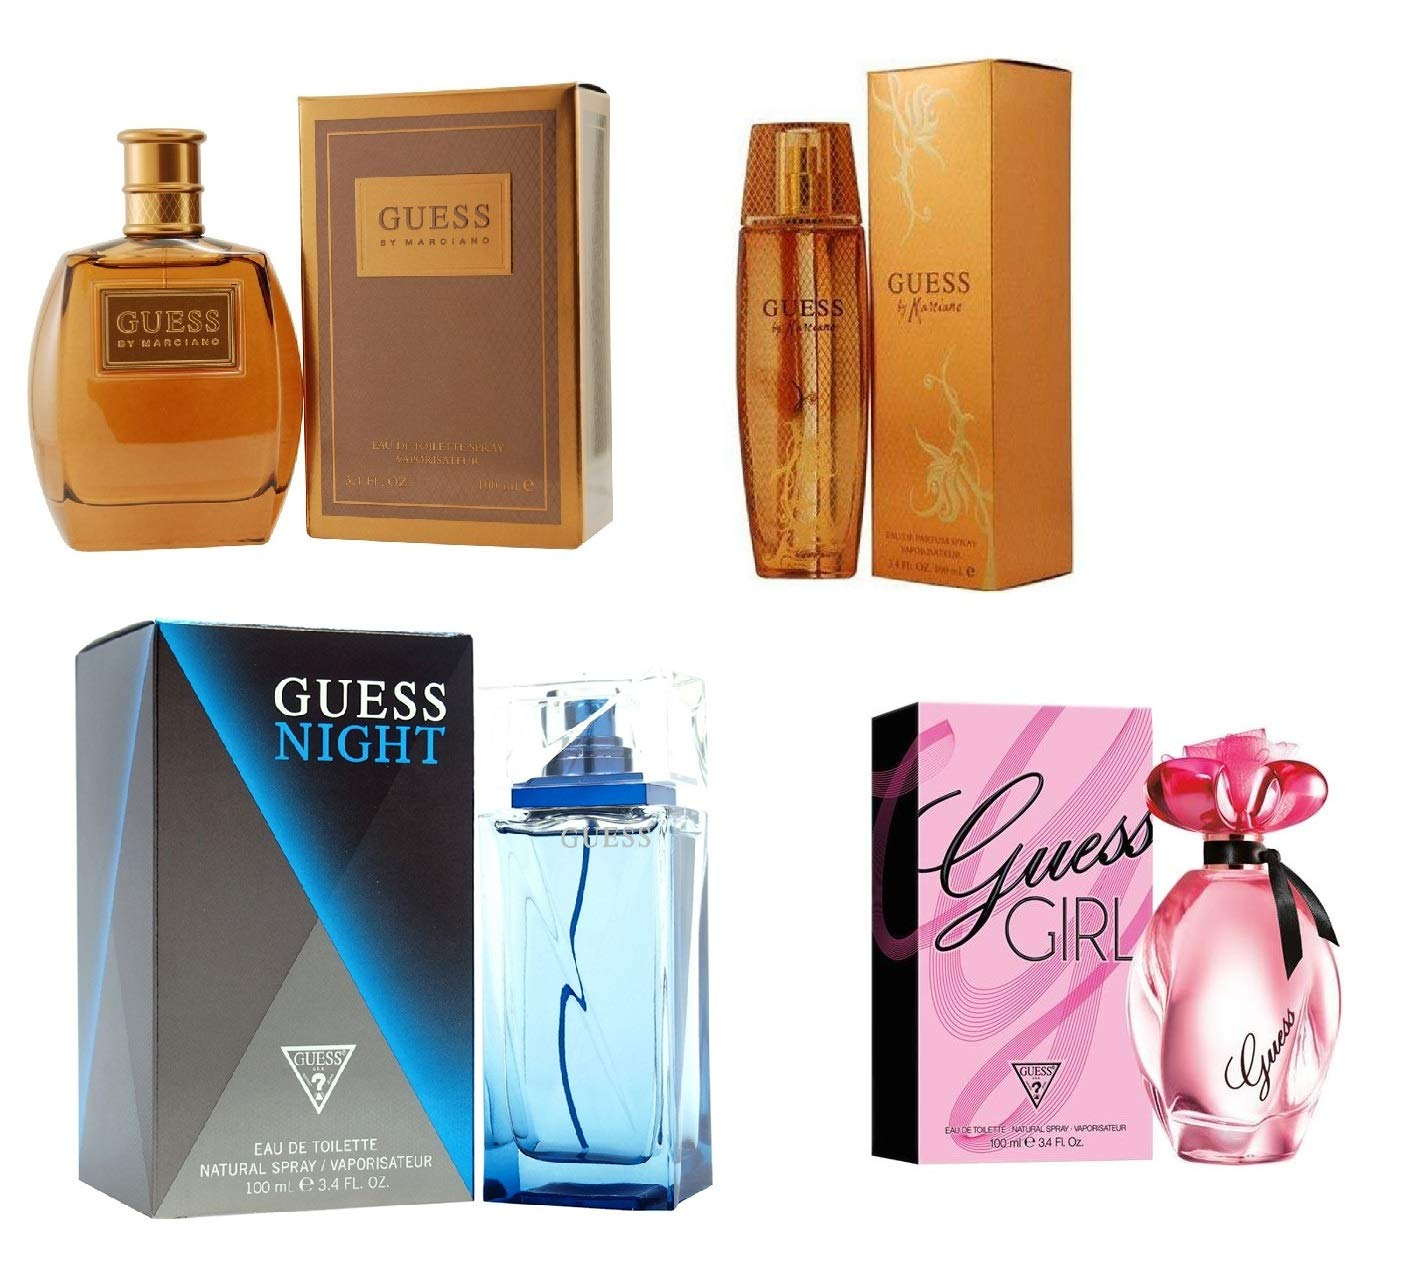 Bundle of 4 Guess Perfumes, Guess Marciano for Men & Women, Guess Night & Guess Girl